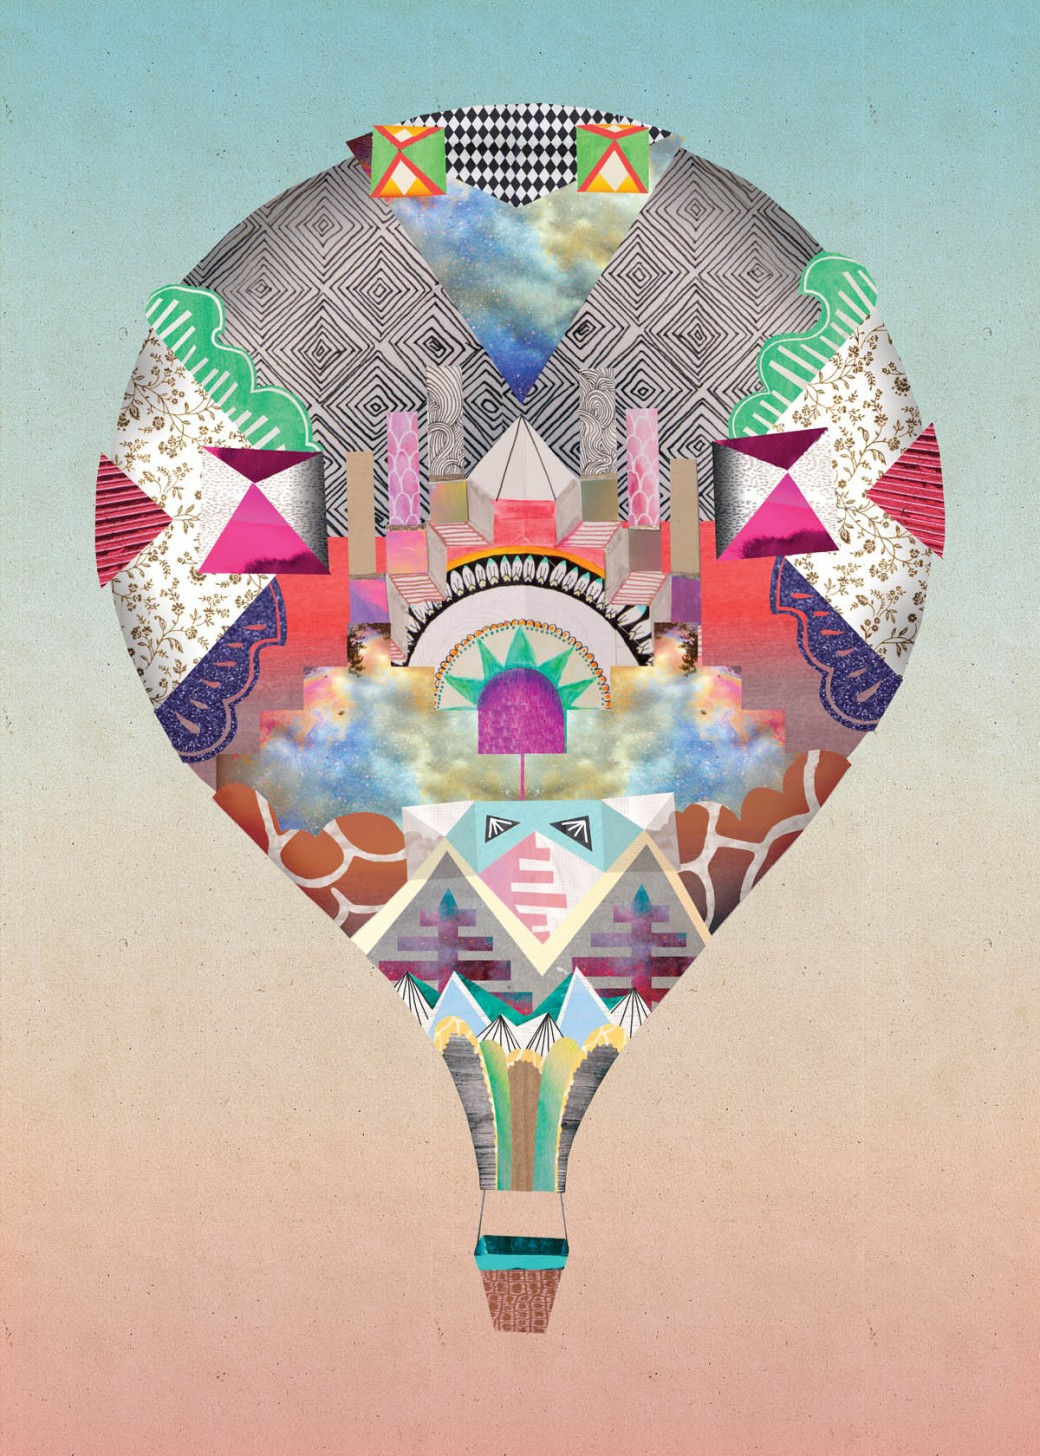 Sam Pierpoint's 3D Paper Illustrations: cogo_house_balloon-1040x1456.jpg